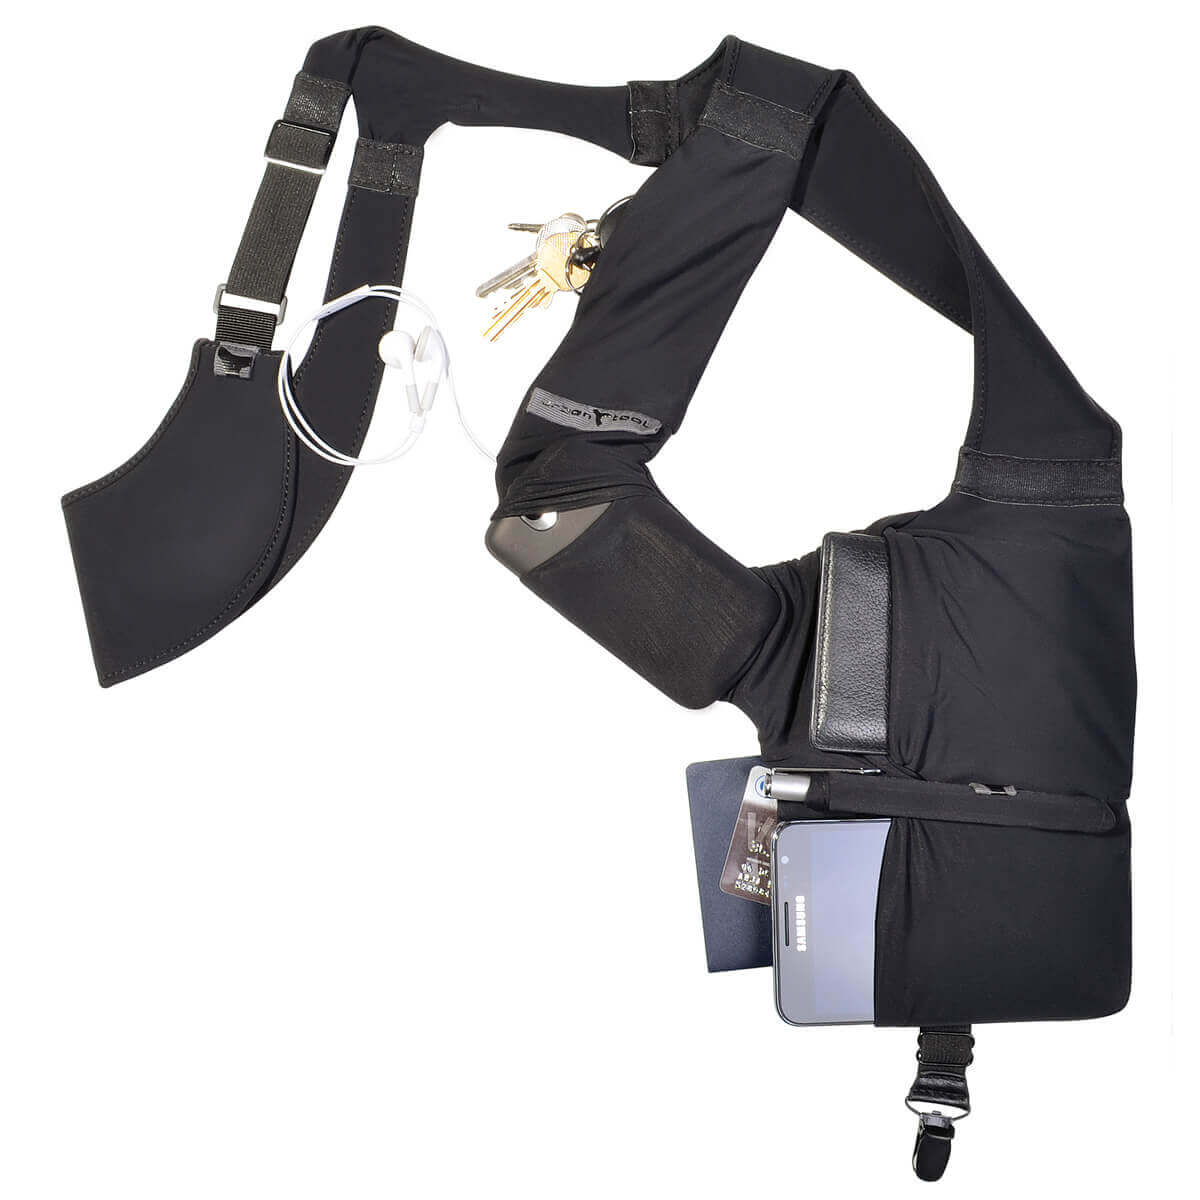 Gadget shoulder holster for day-to-day business activities ...